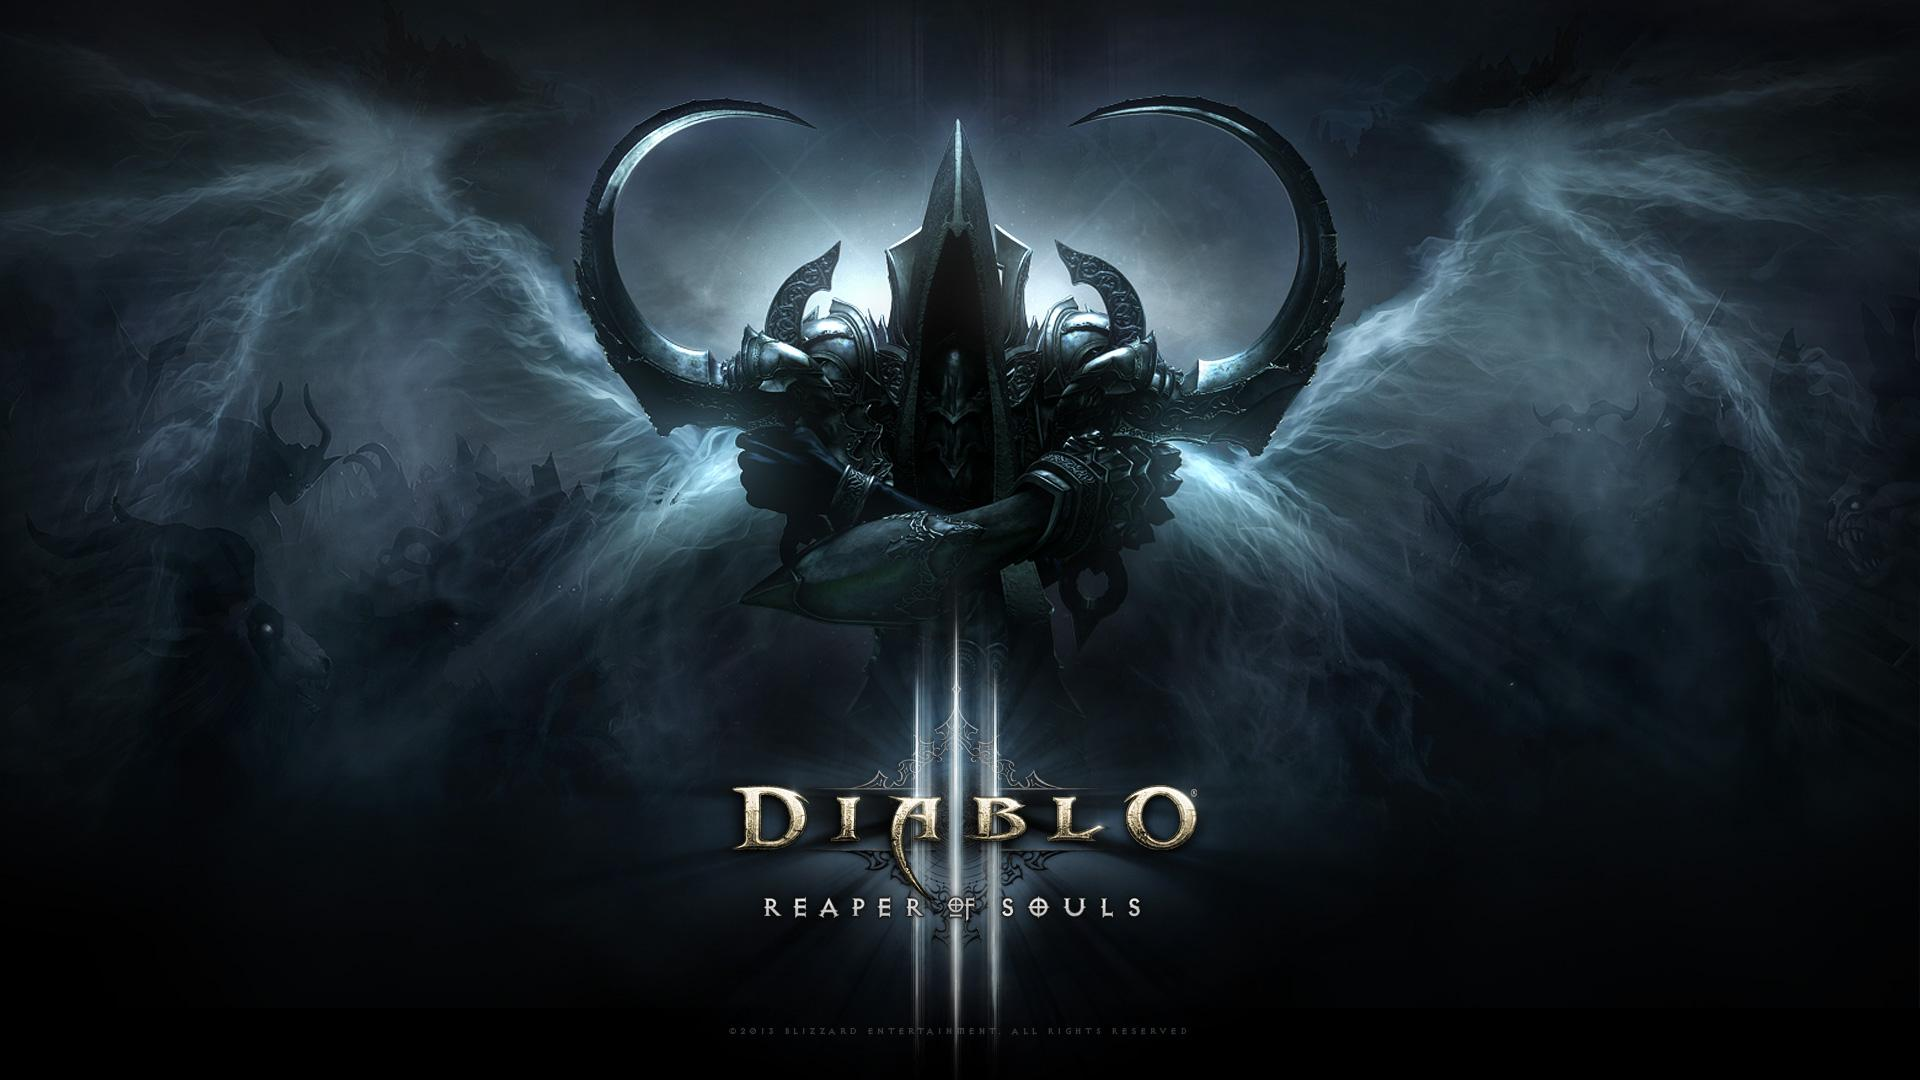 Diablo 3 to get Patch 2.1.2 to happily wrap up Season 1 of the game